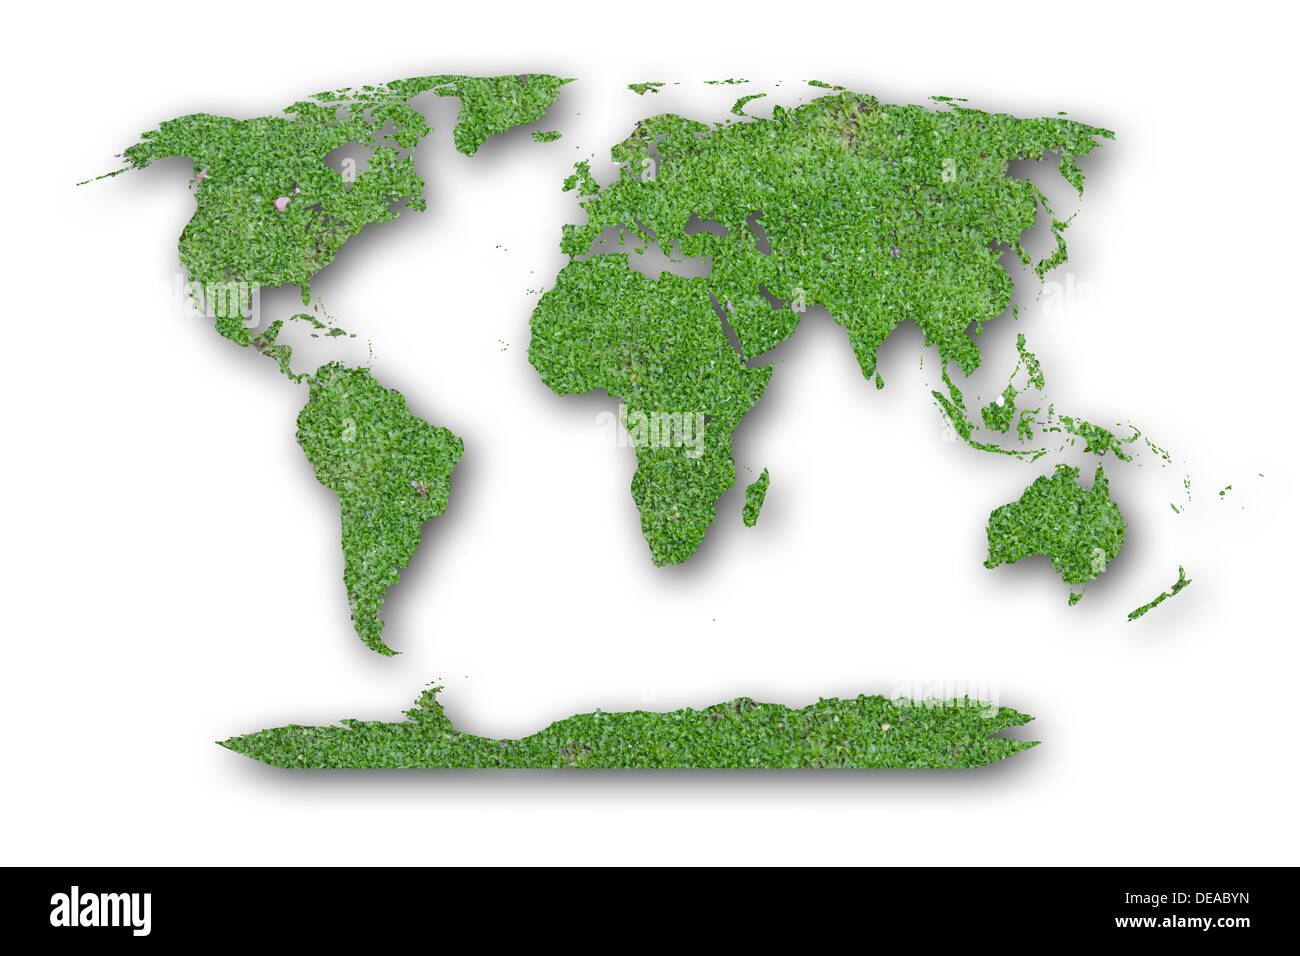 surface, rain, outdoor, wallpaper, cement, lichen, brick, stone, natural, grow, park, mossy, damp, map, green, earth, rock, leaf - Stock Image